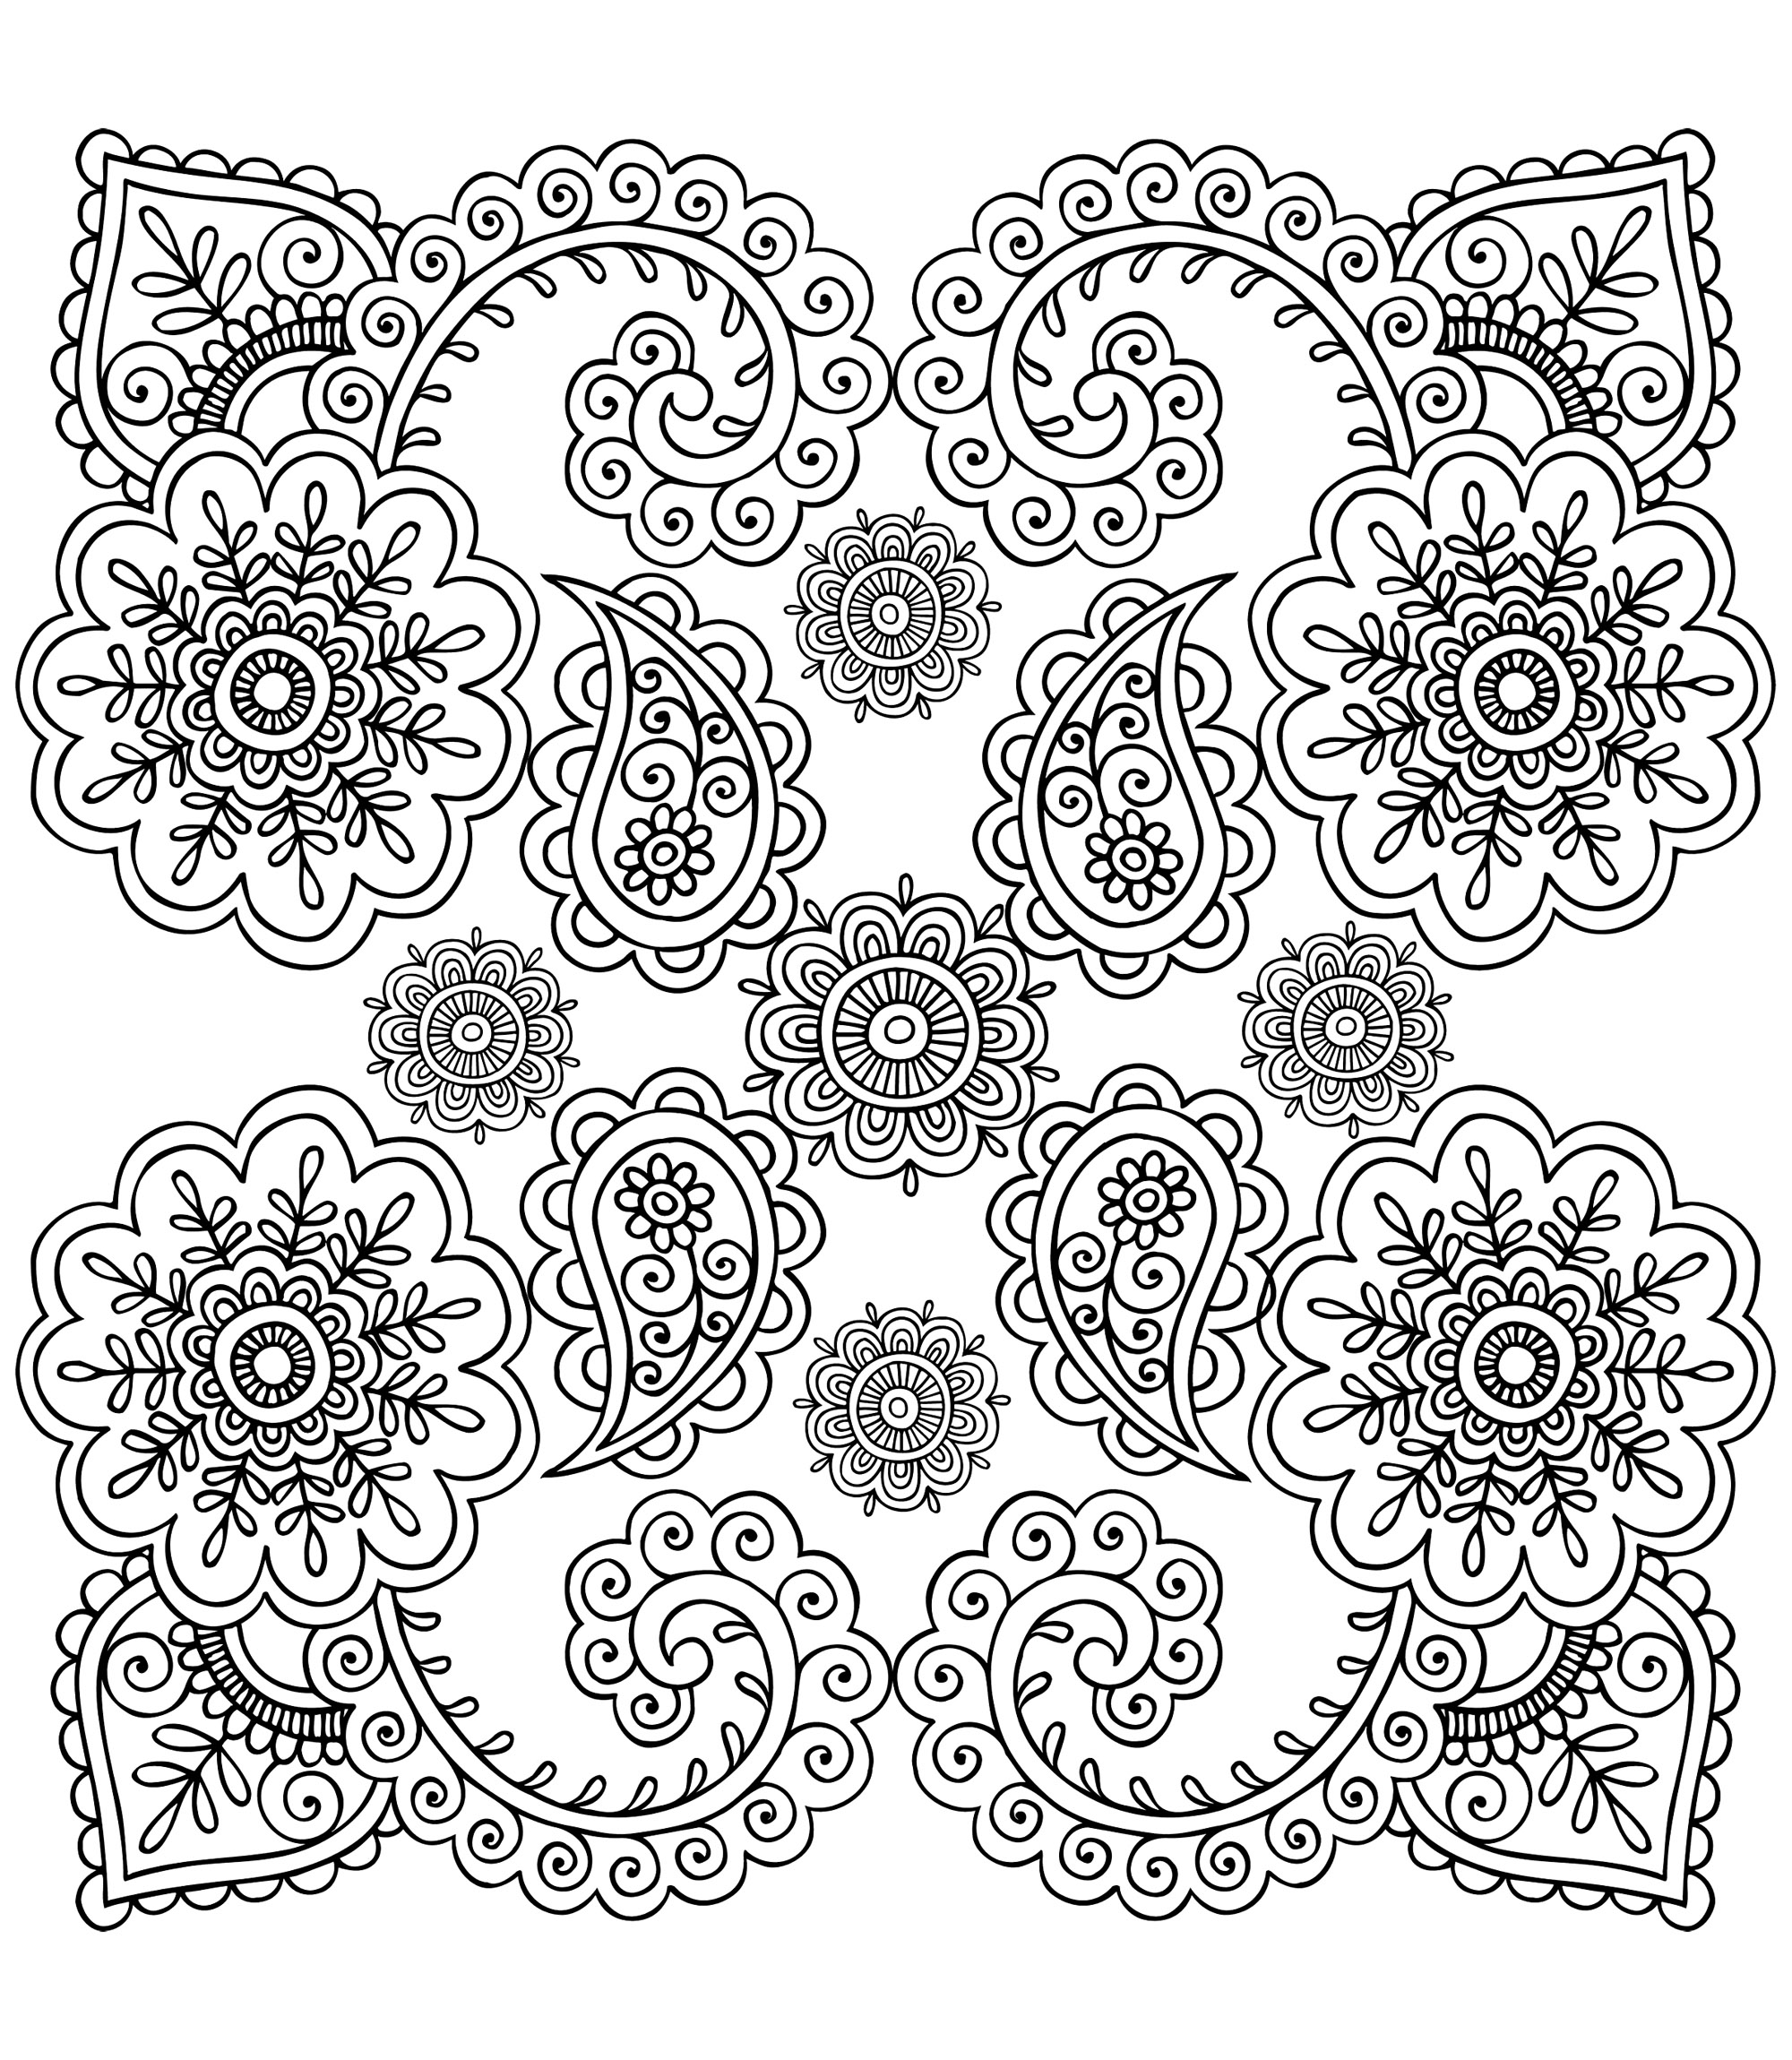 Anti stress fleurs anti stress art th rapie coloriages difficiles pour adultes - Coloriage therapie ...